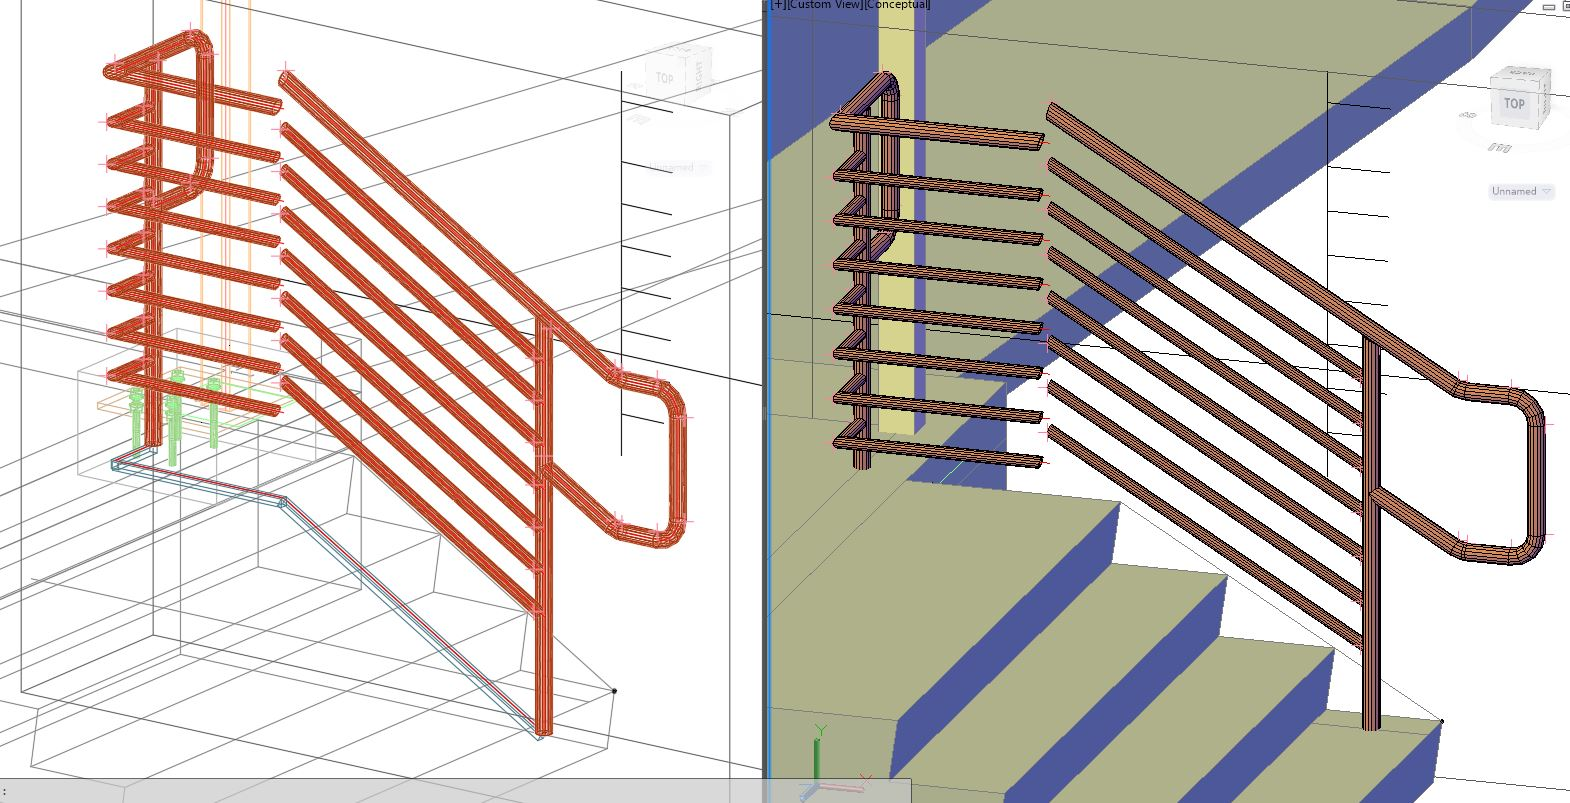 Solved: Middle handrail not connecting - Autodesk Community